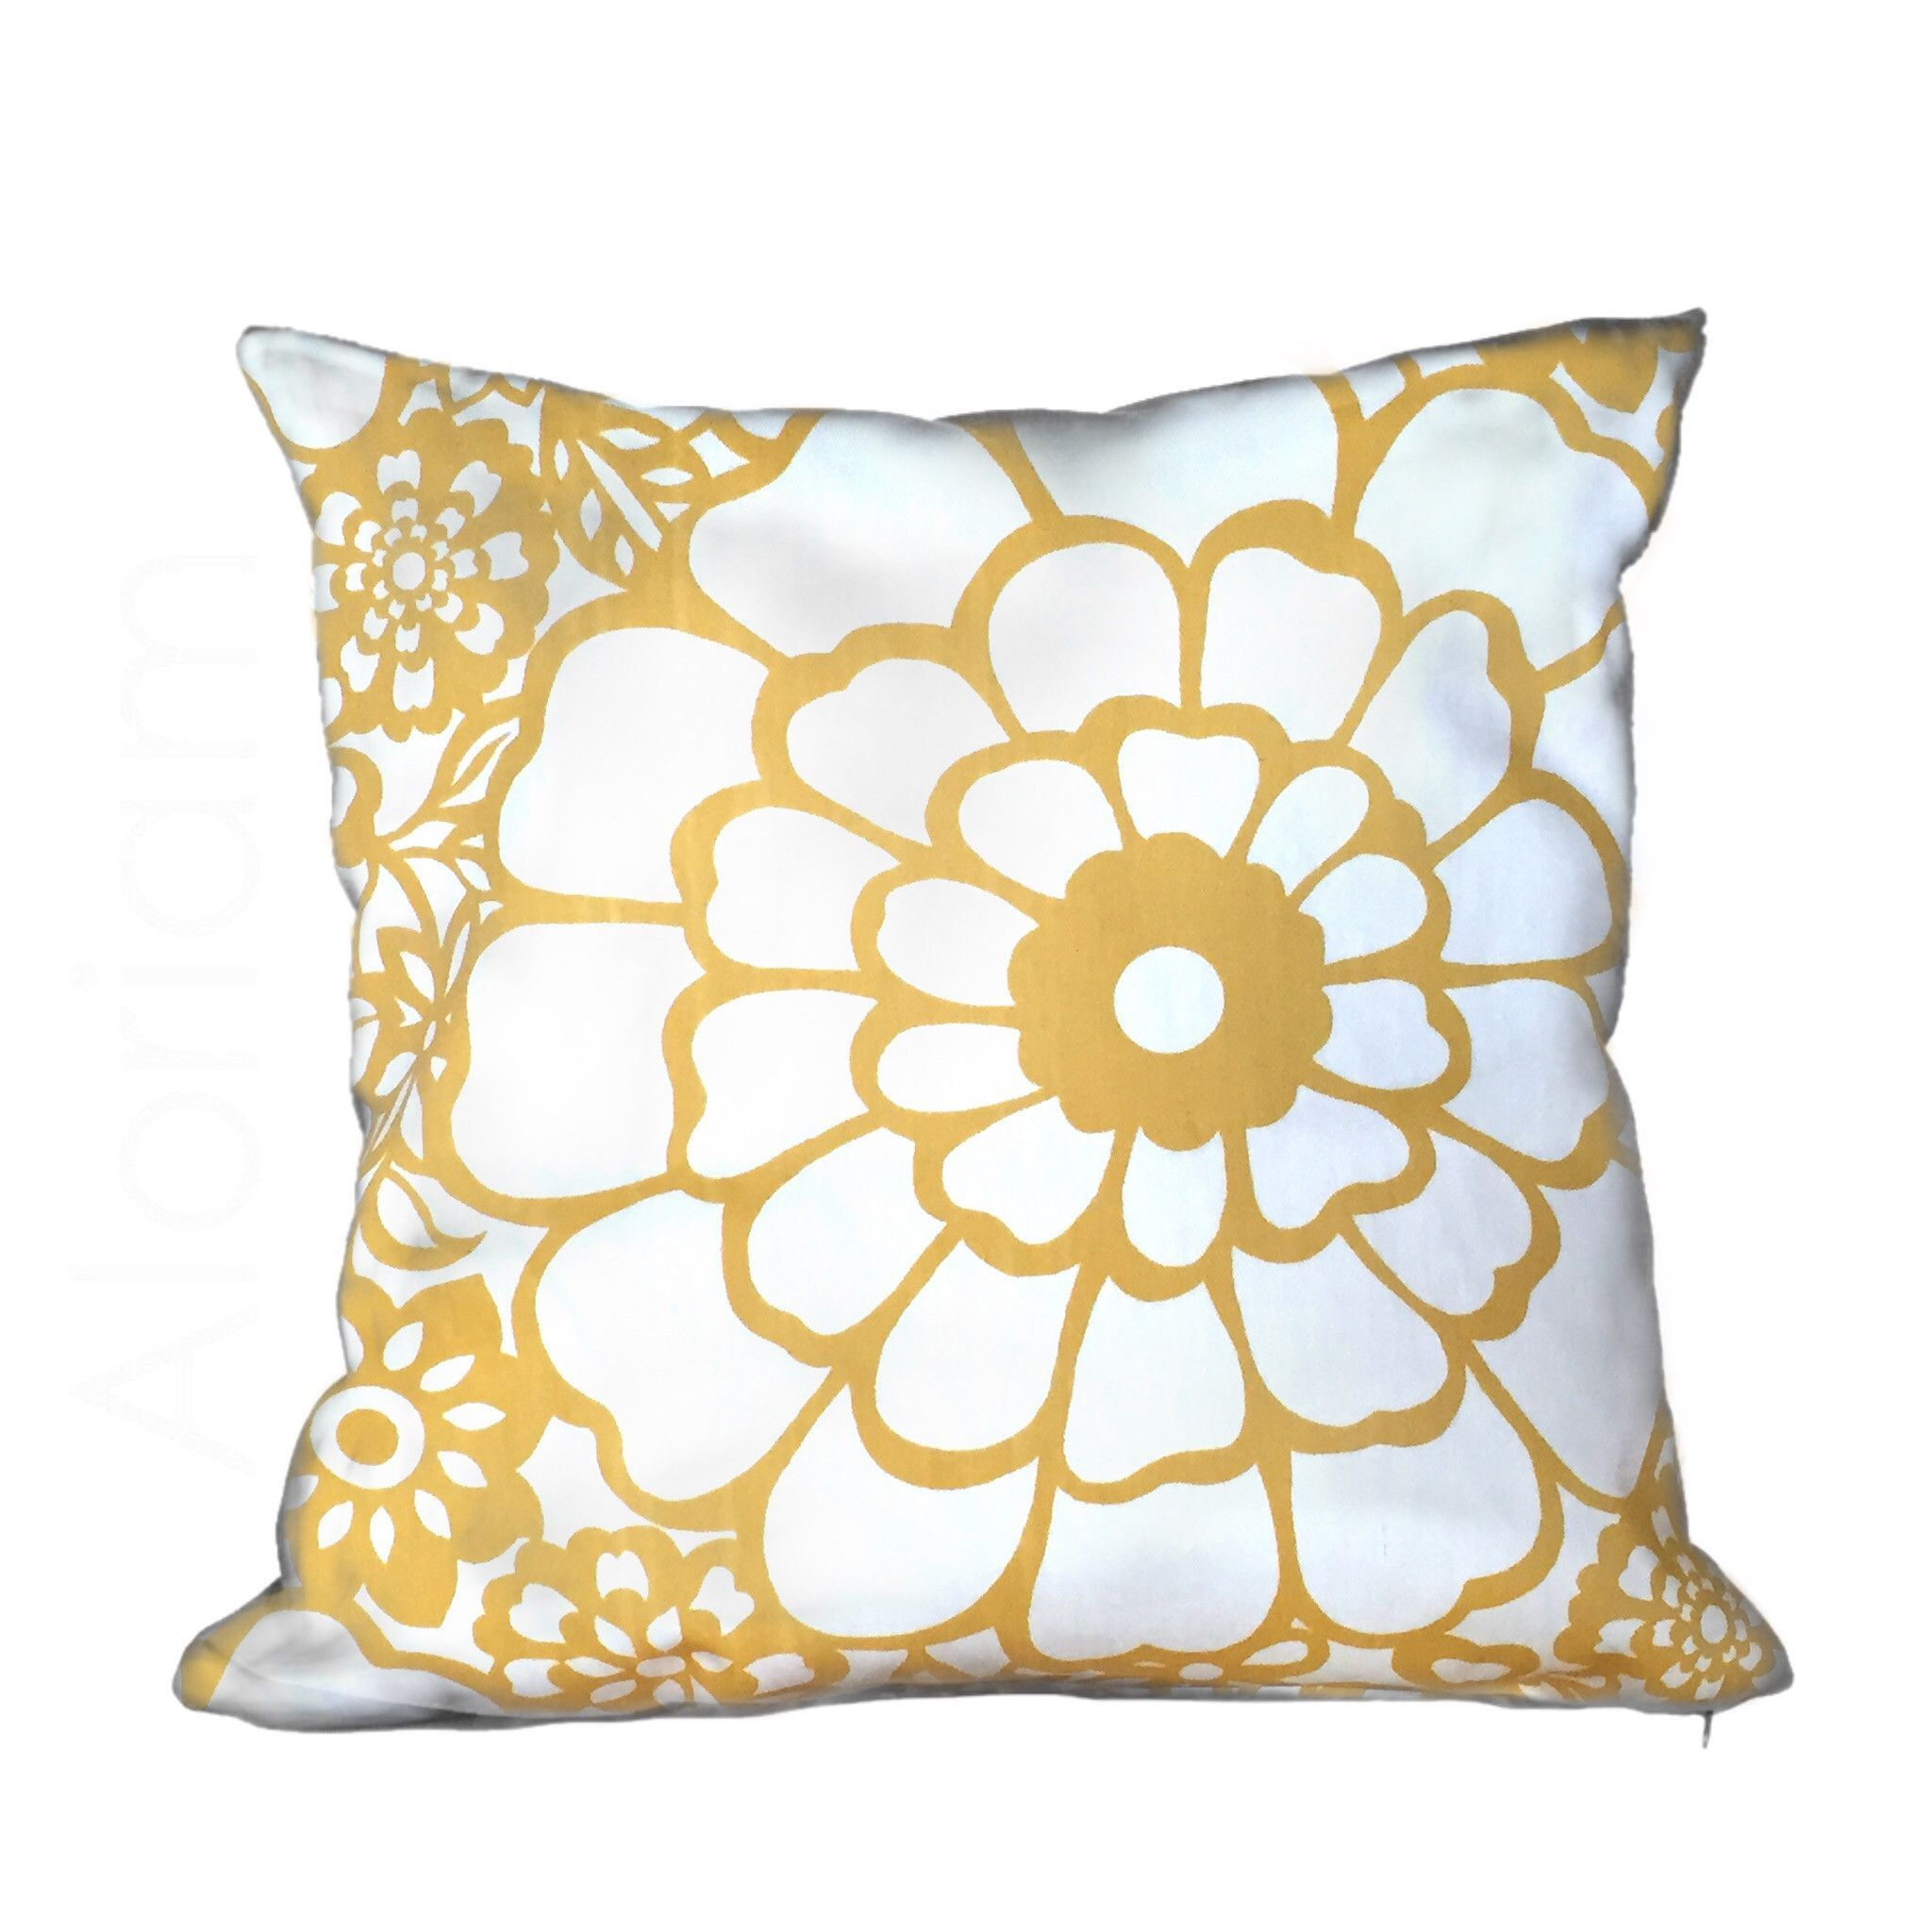 Thomas paul seedlings fiesta yellow white floral pillow cover